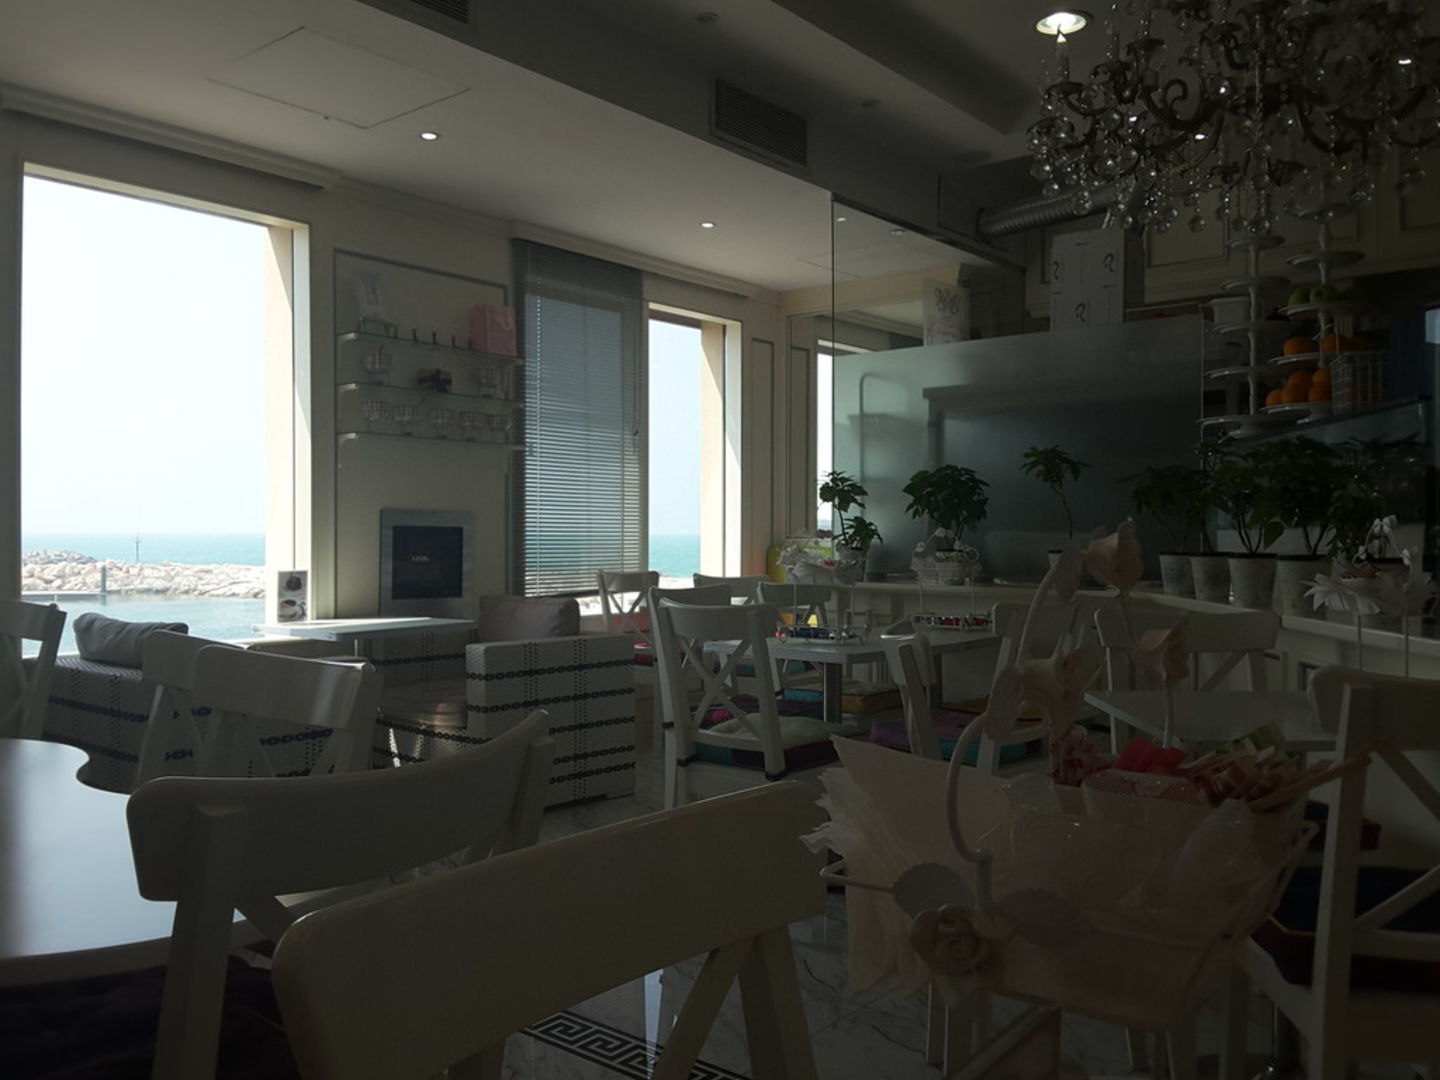 HiDubai-business-le-petit-cafe-food-beverage-coffee-shops-umm-suqeim-3-dubai-2